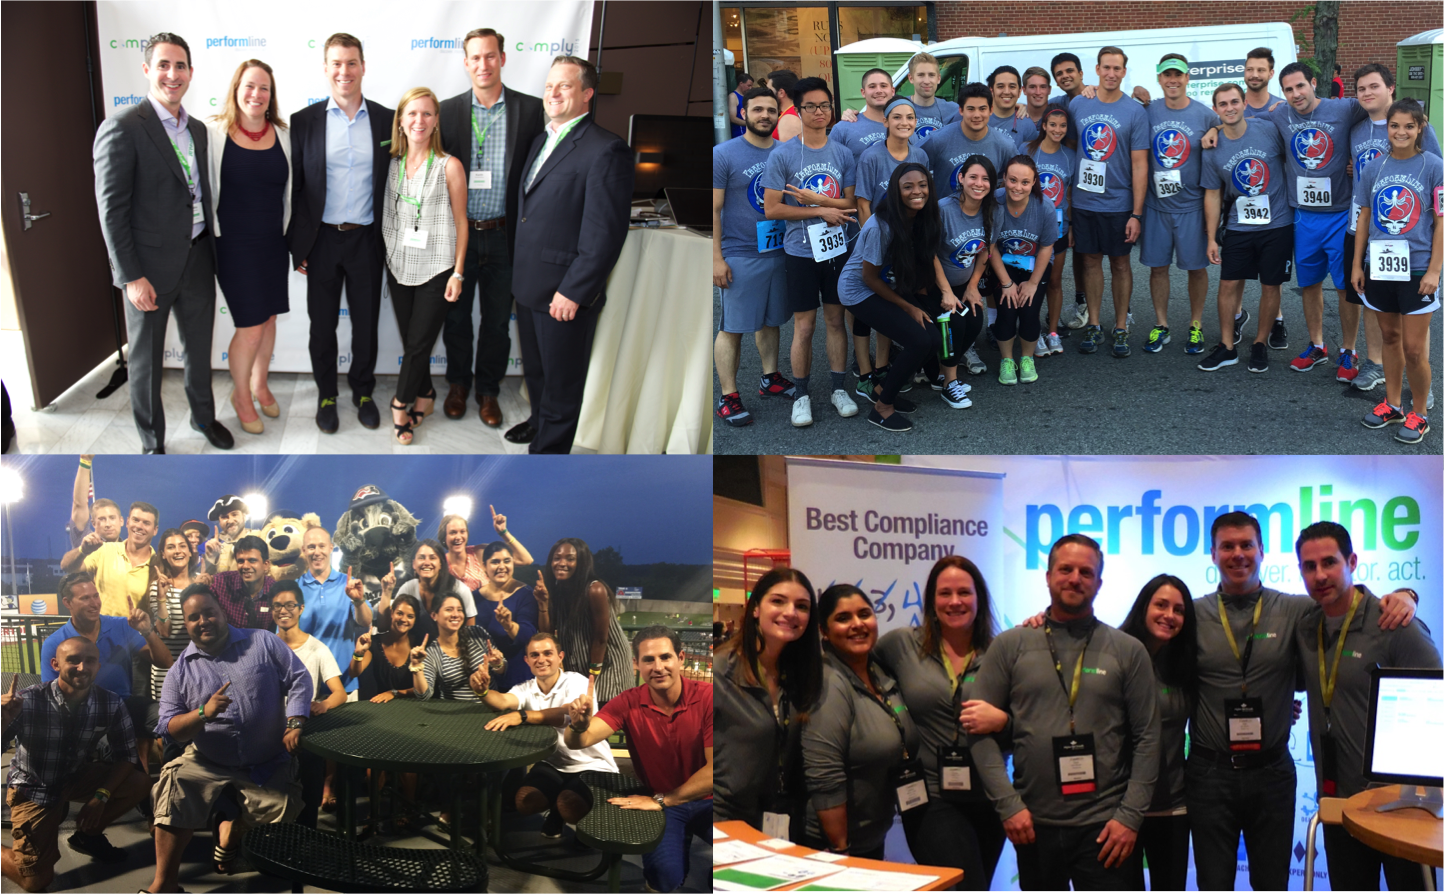 Top 10 Accomplishments in 2015 at PerformLine